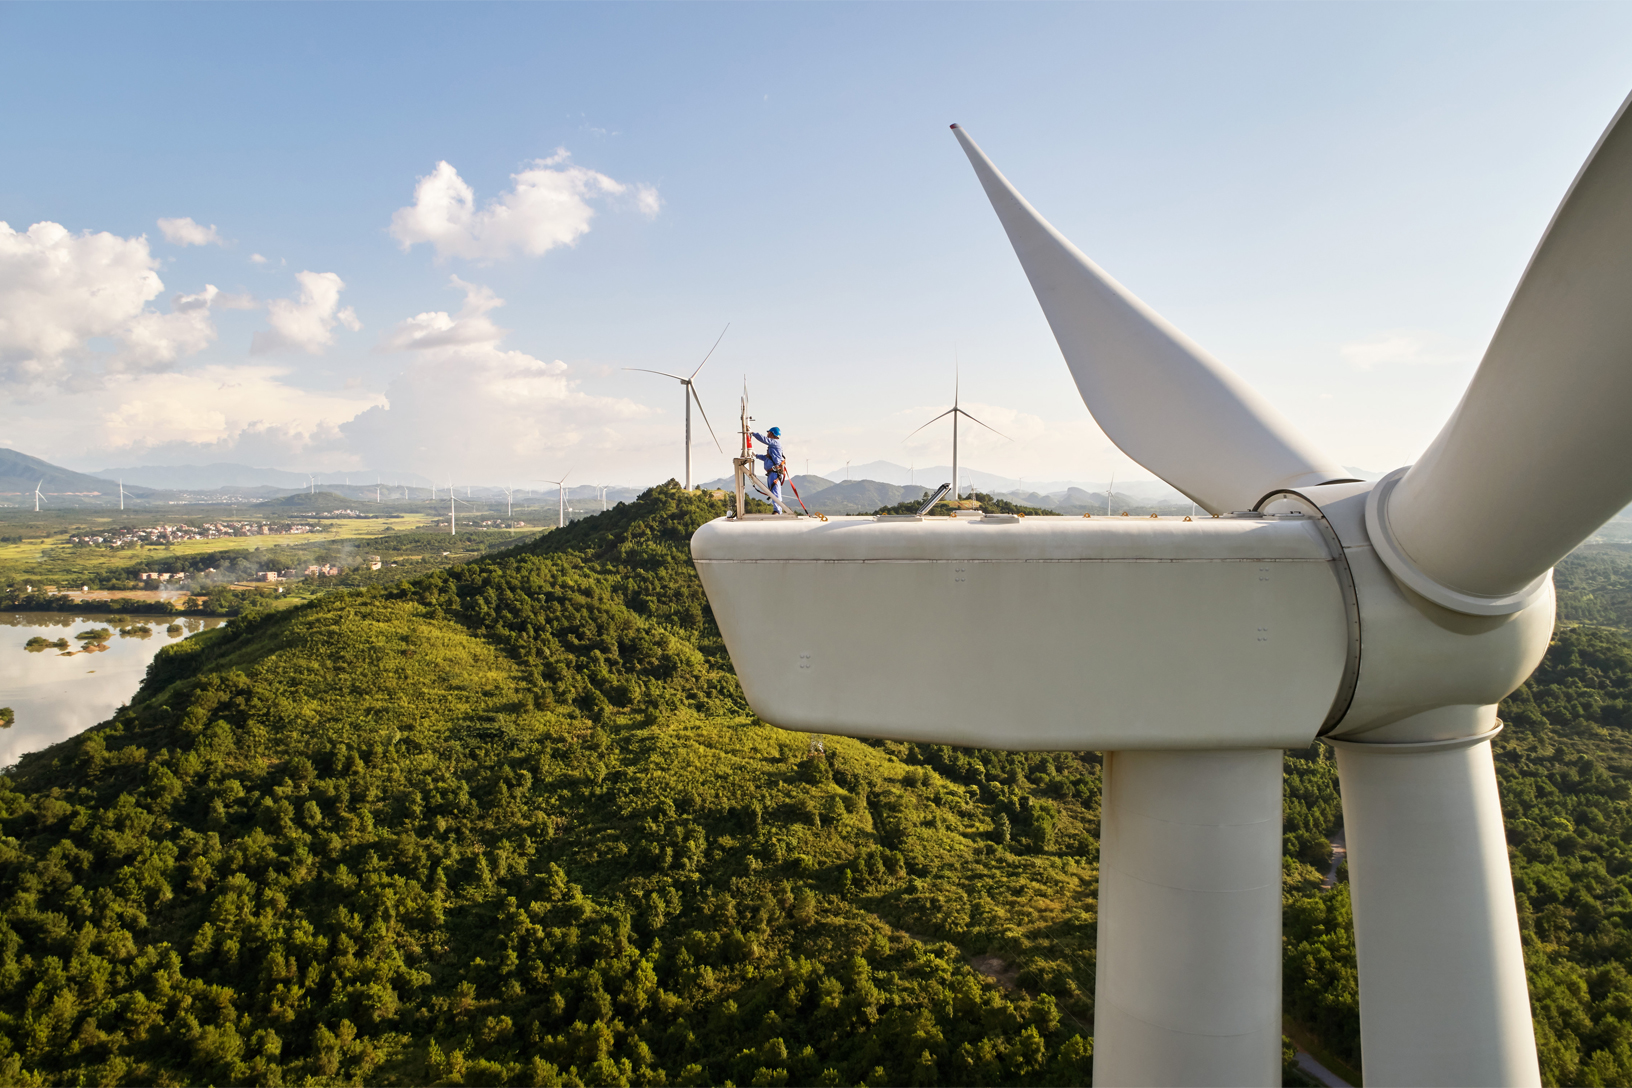 China-Clean-Energy-Fund-invests-in-wind-farms-082619_big.jpg.large_2x